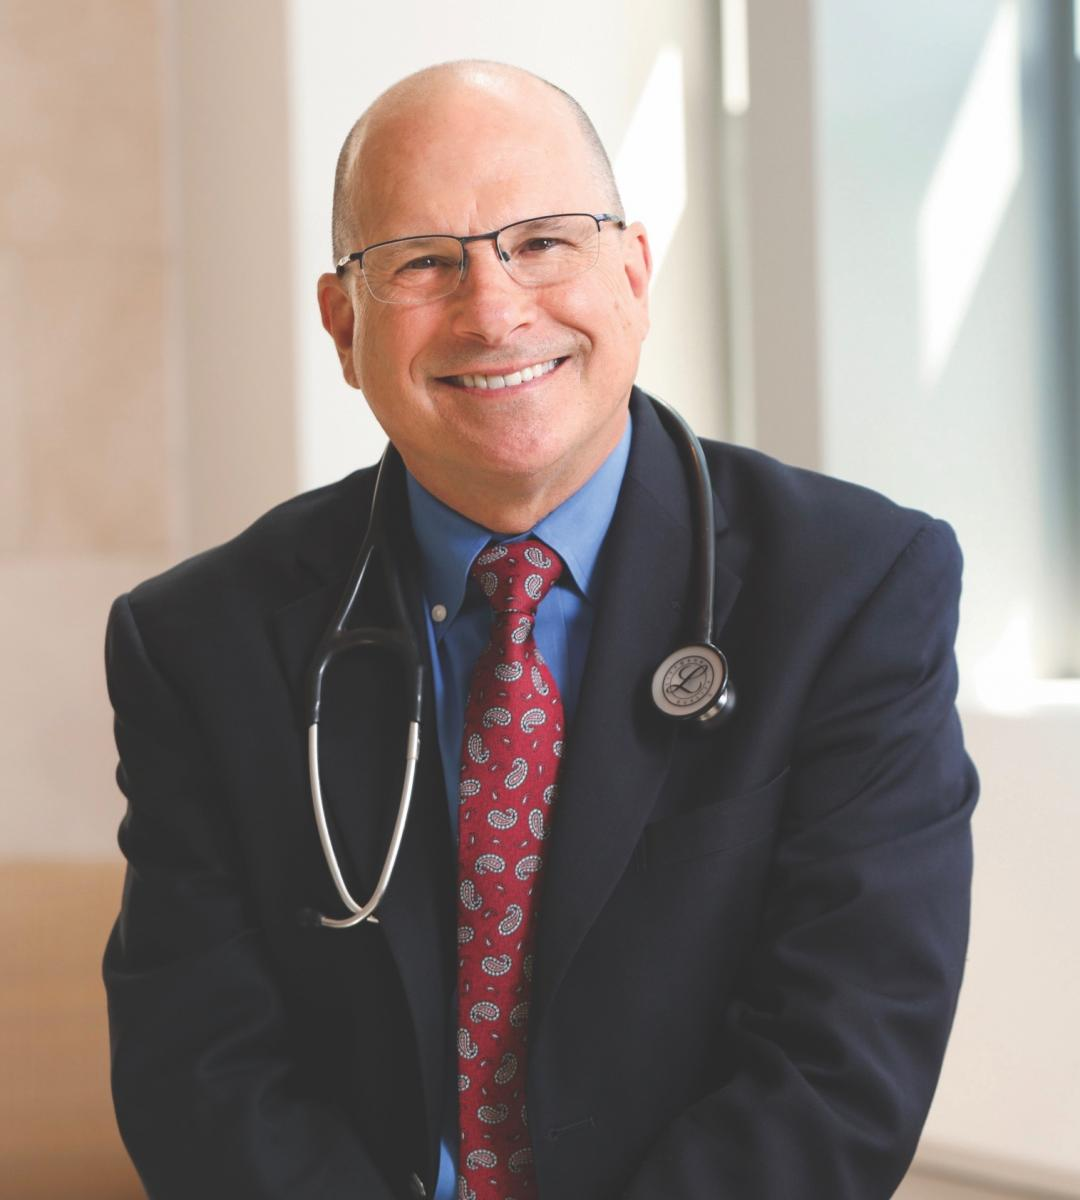 """Primary care physicians are used to looking at a patient on a continuum. With cancer patients, they often lose the whole story."" -- KEVIN OEFFINGER, MD (photo by Ken Huth)"